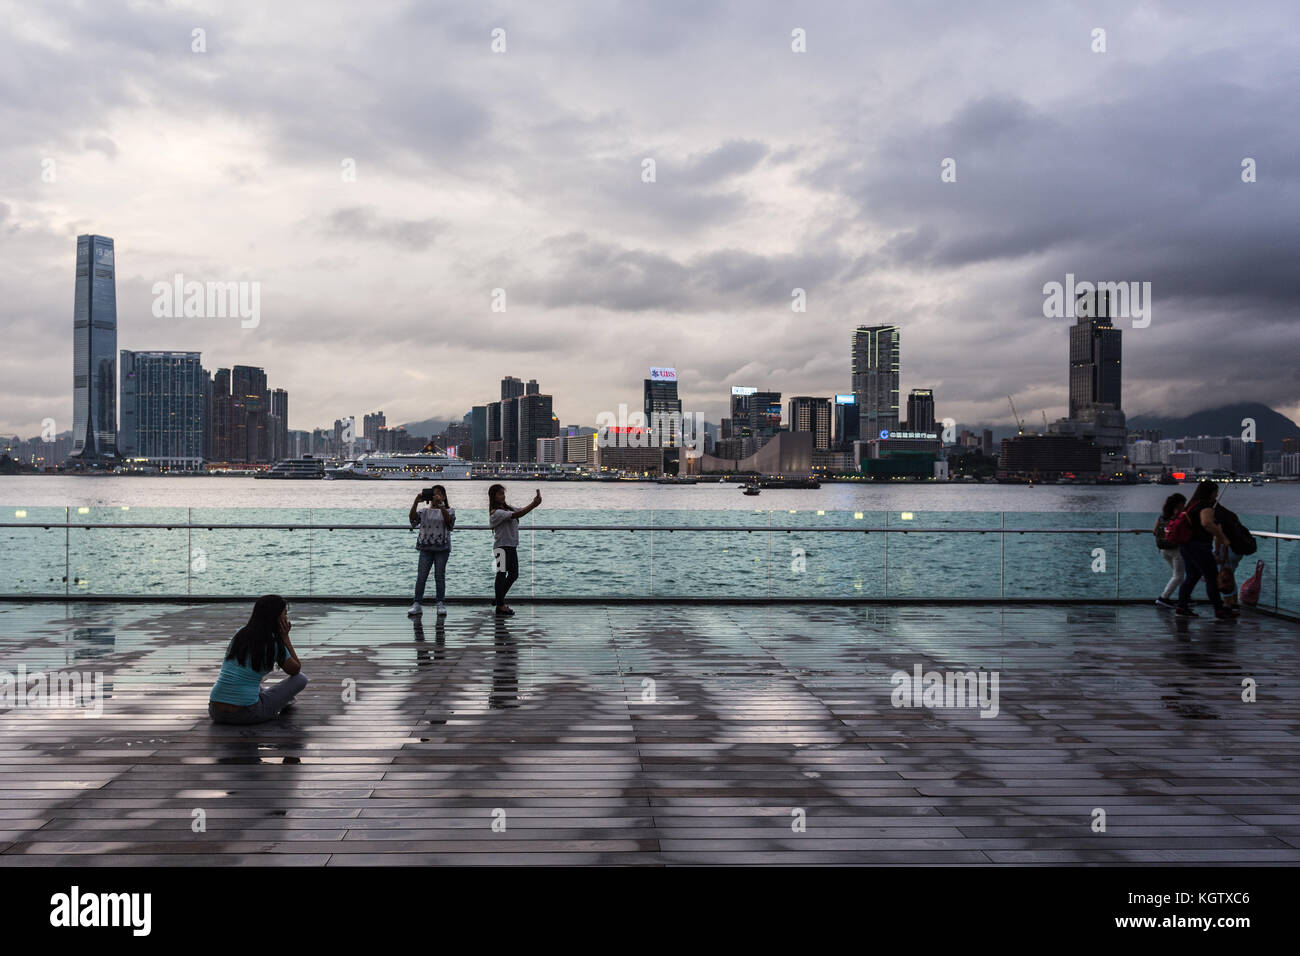 HONG KONG, CHINA - JUNE 16, 2017: Two young Asian women take a selphie with their smartphone in front of the Kowloon - Stock Image